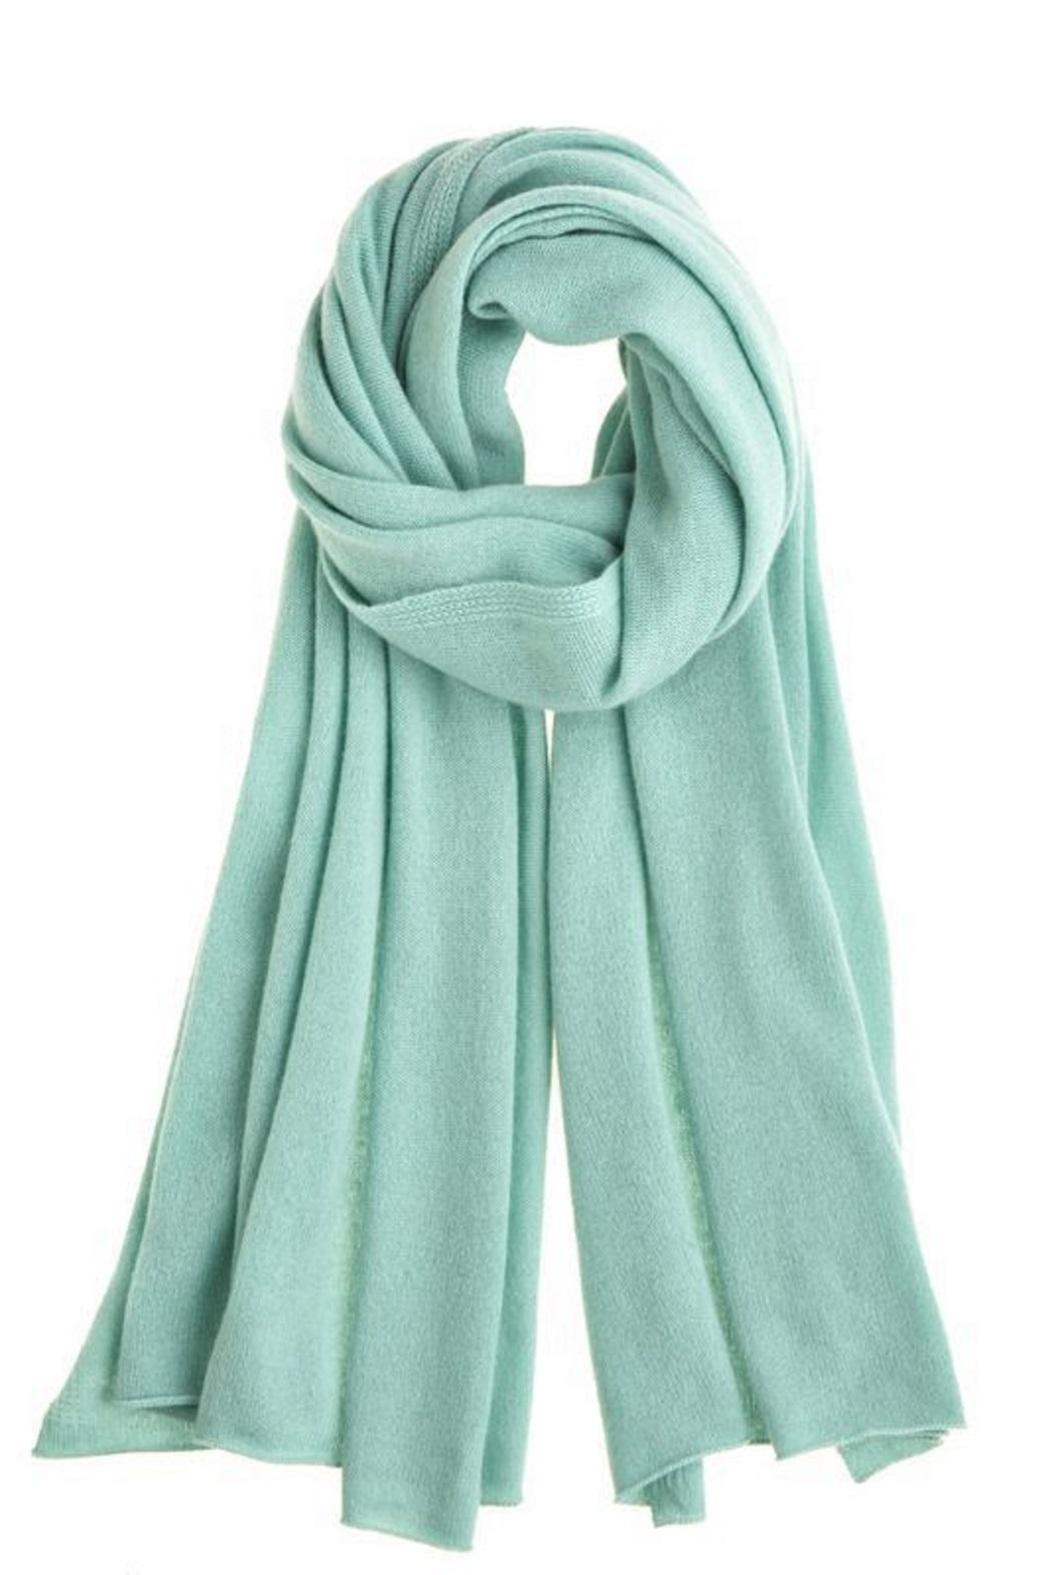 Calypso St. Barth Cushy Cashmere Scarf from Princeton by Bella ... 7d7eed8438a78